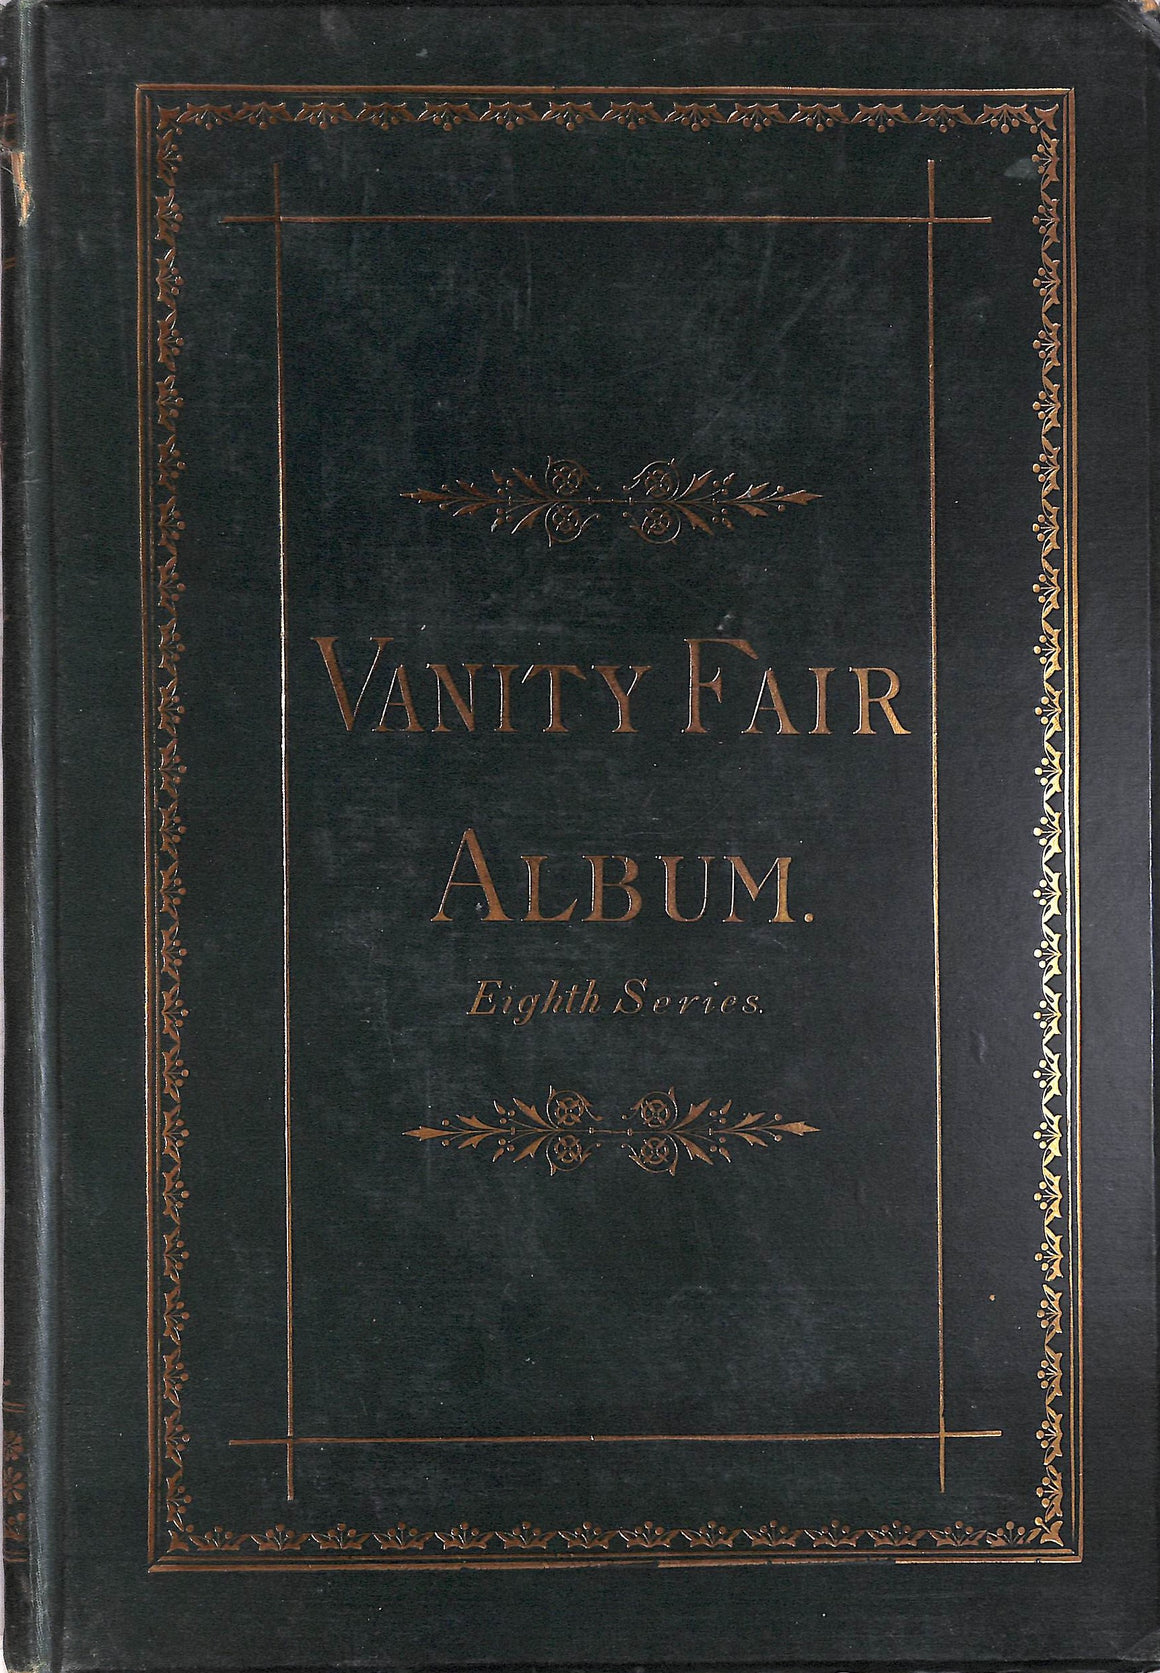 """Vanity Fair Album. Eighth Series."" JEHU Junior"